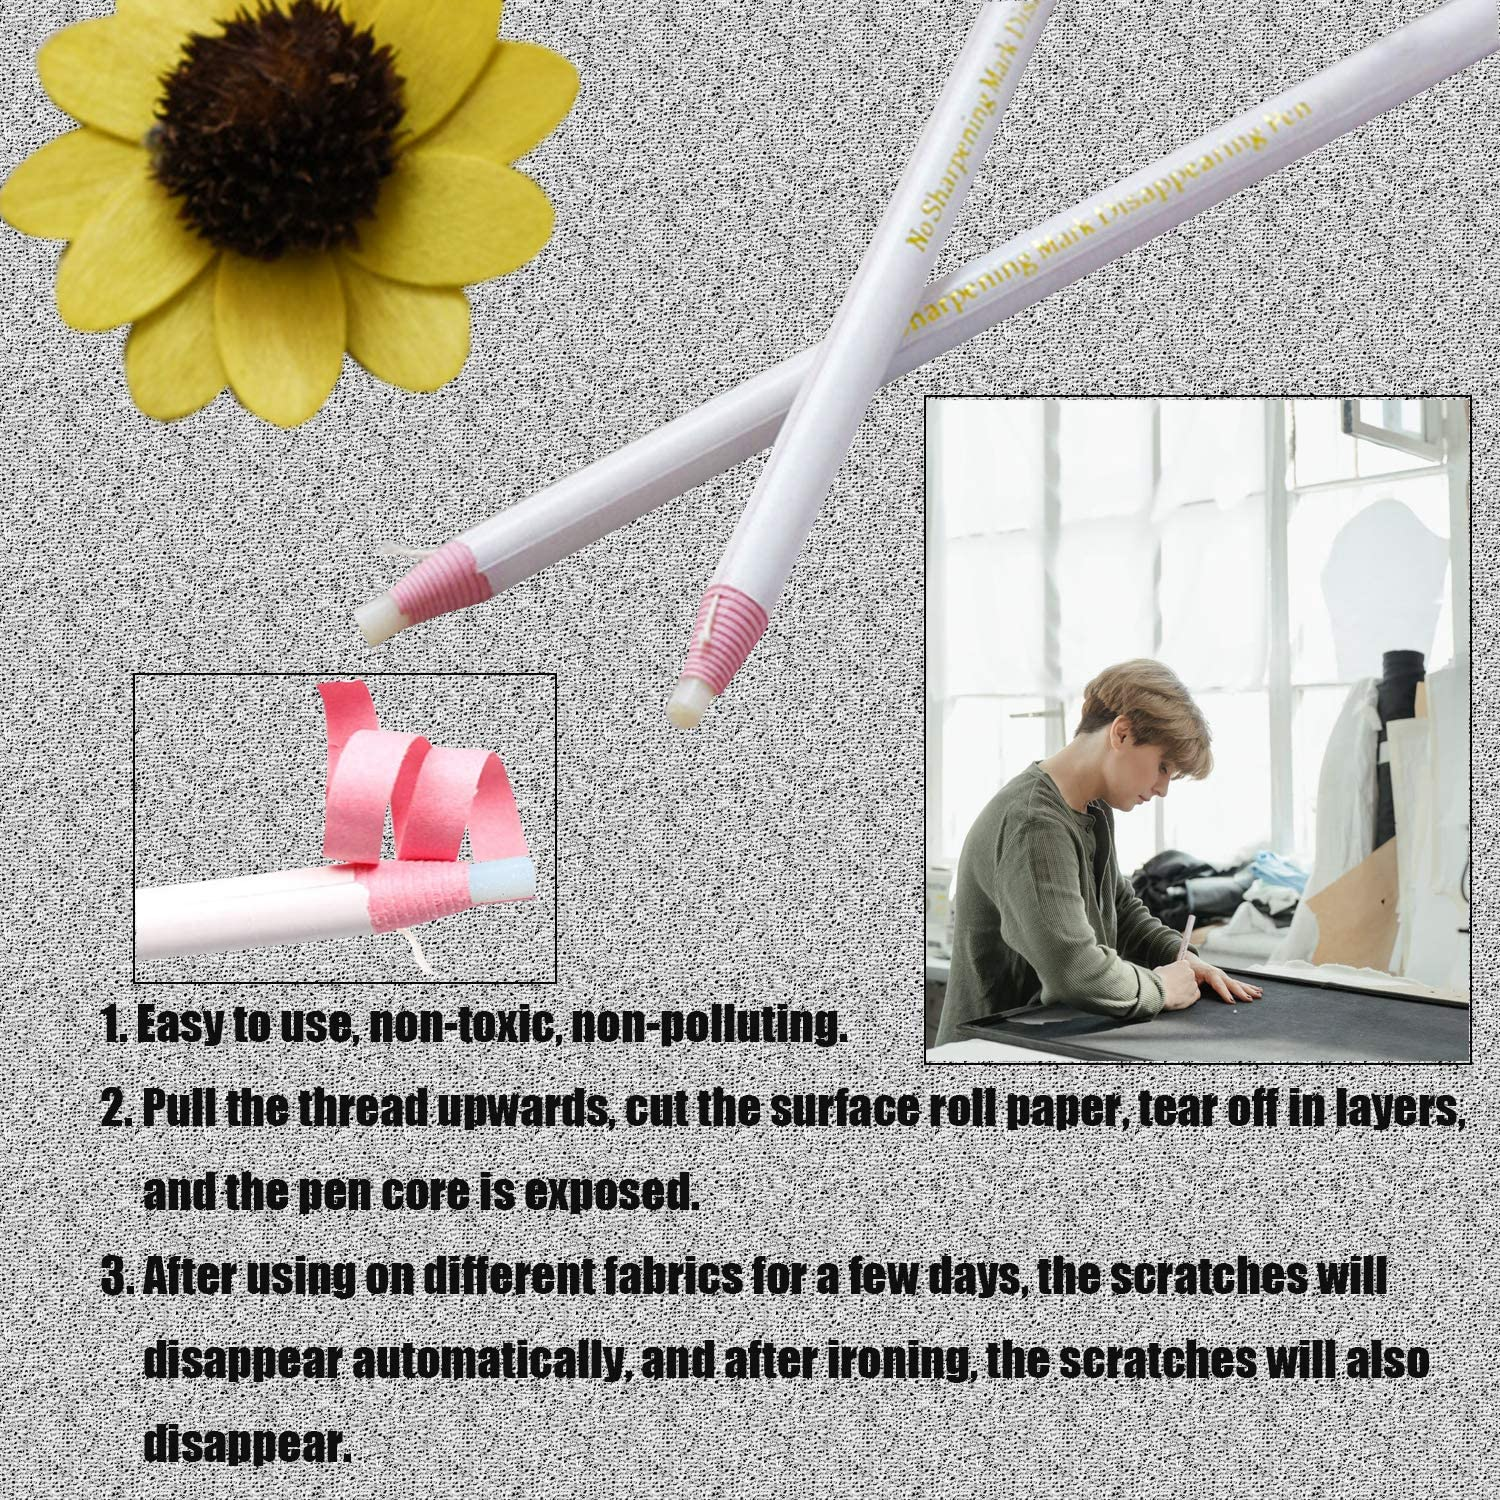 Include 9 Threader 2 Metal Drawstring Threader 2 Metal Tweezers and 2 Sewing Pen Winorda 19 Pieces Sewing Tools Kit 2 Plastic Drawstring threaders2 Sewing Loop Turner